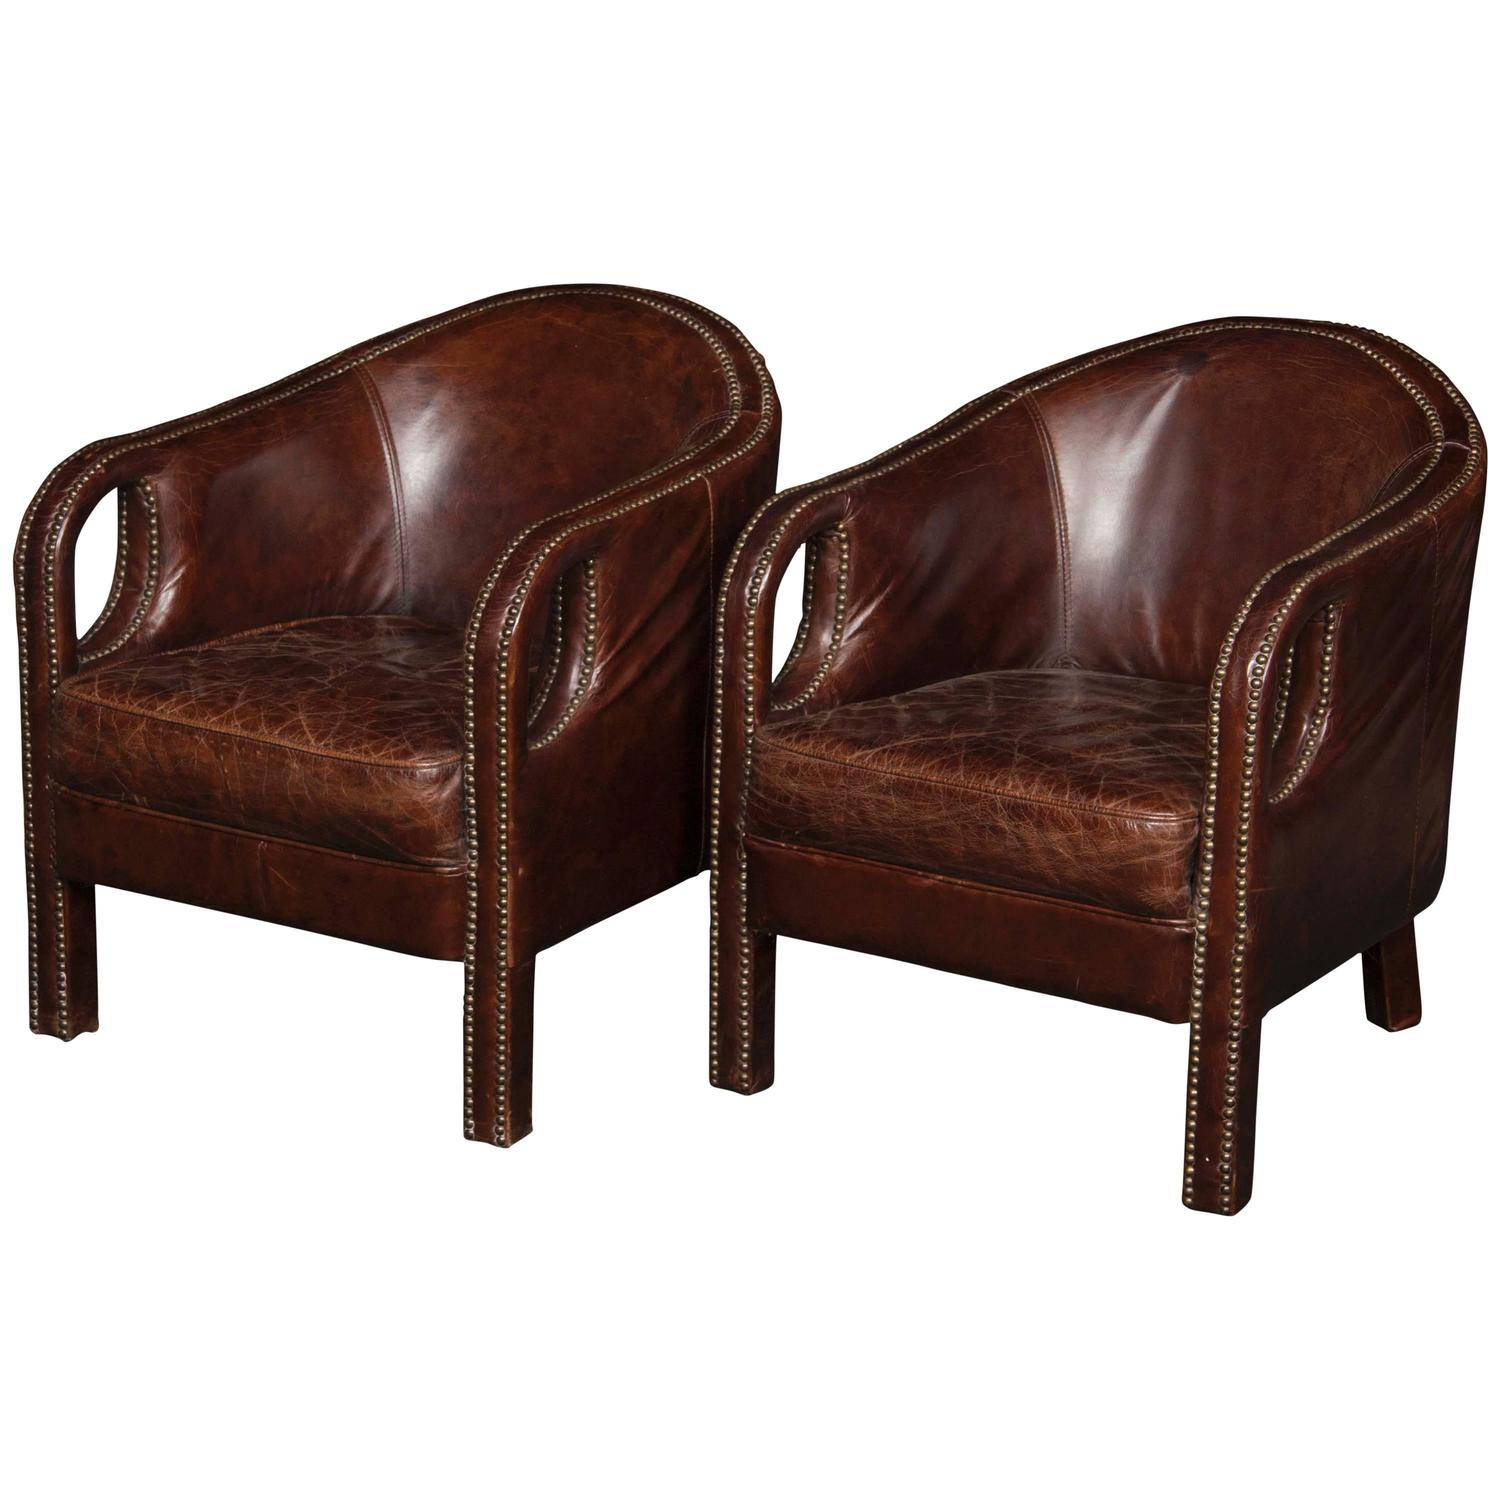 mid 20th century french leather club chairs at 1stdibs